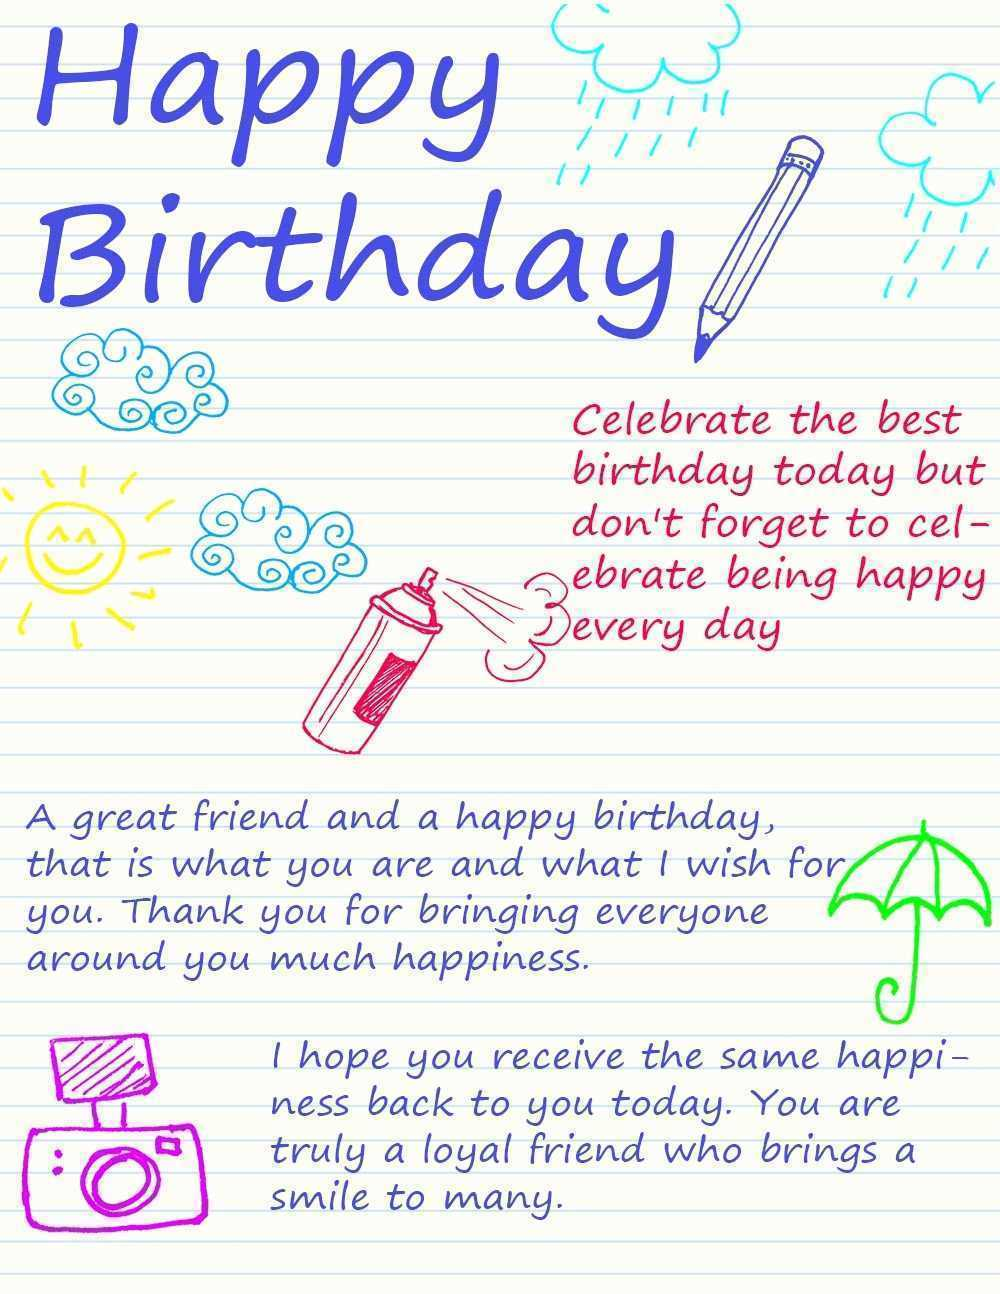 birthday message for best friend tumblr ; birthday-quotes-tumblr-awesome-birthday-quote-for-friend-tumblr-happy-birthday-tumblr-of-birthday-quotes-tumblr